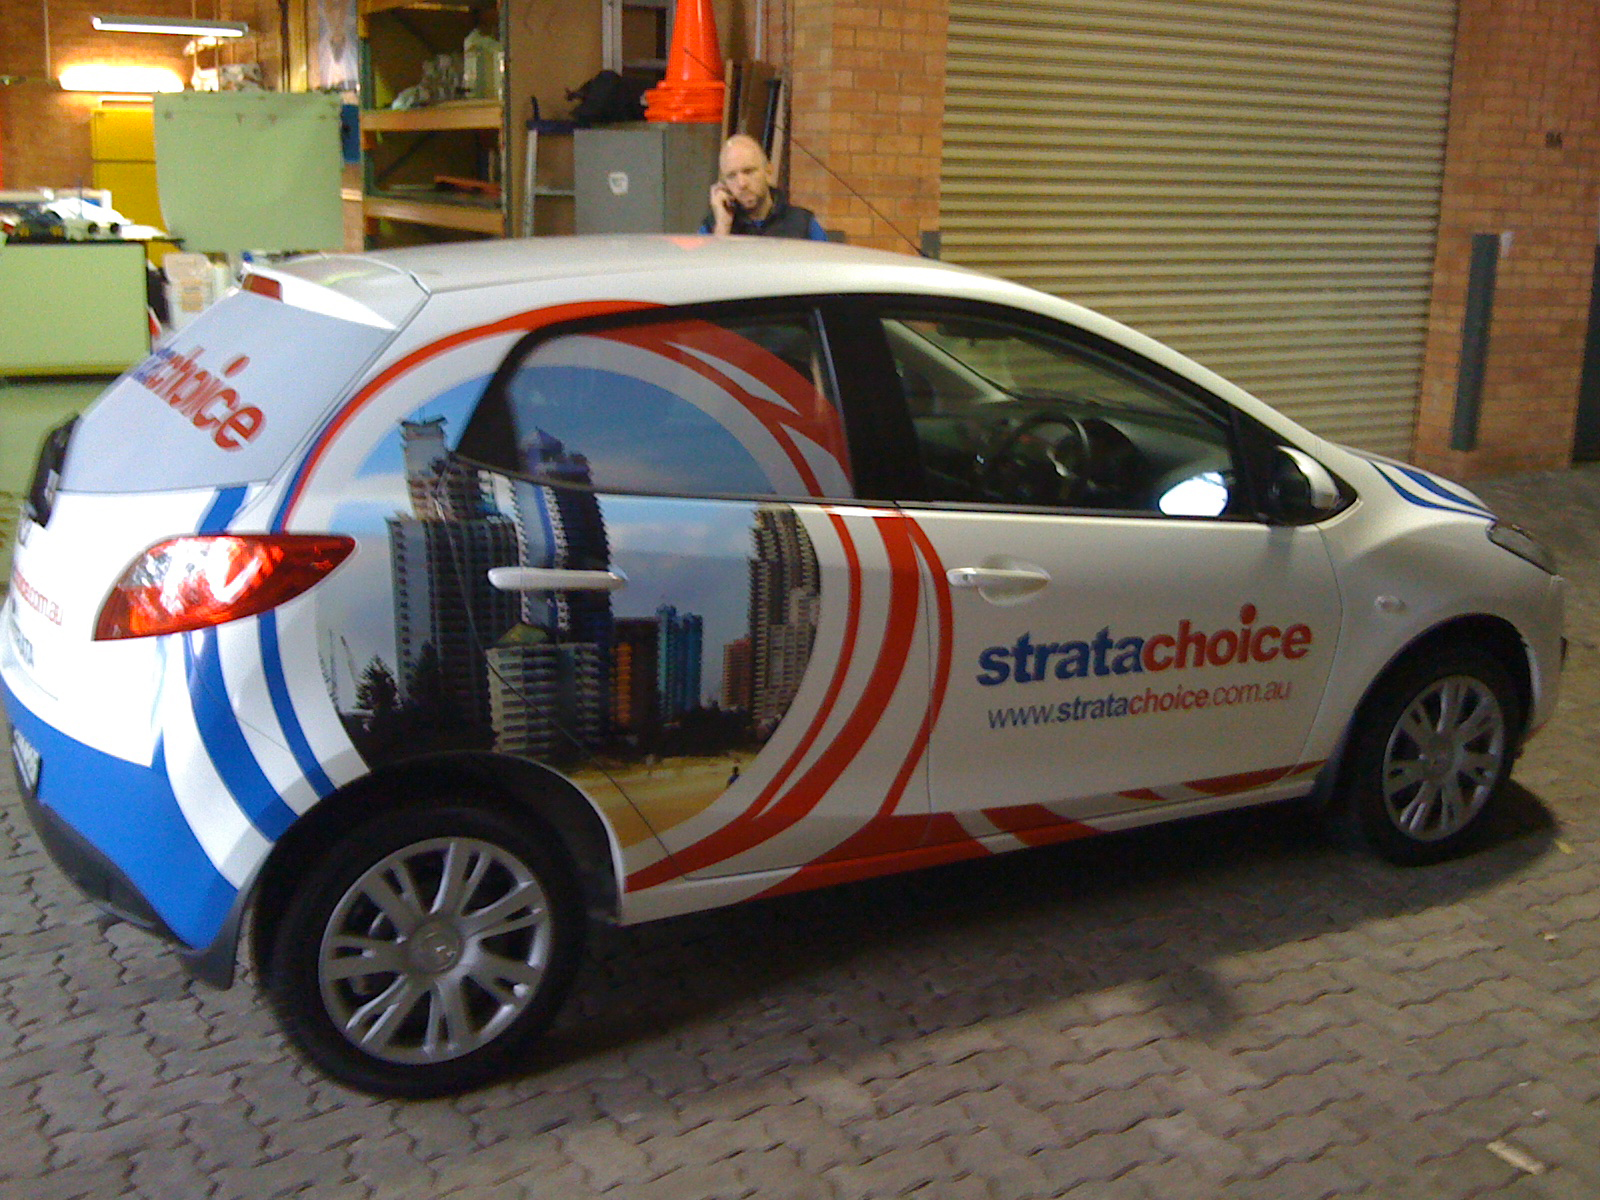 Jmac Graphics, Signage, Outdoor, Wrapping Car, Strata Choice